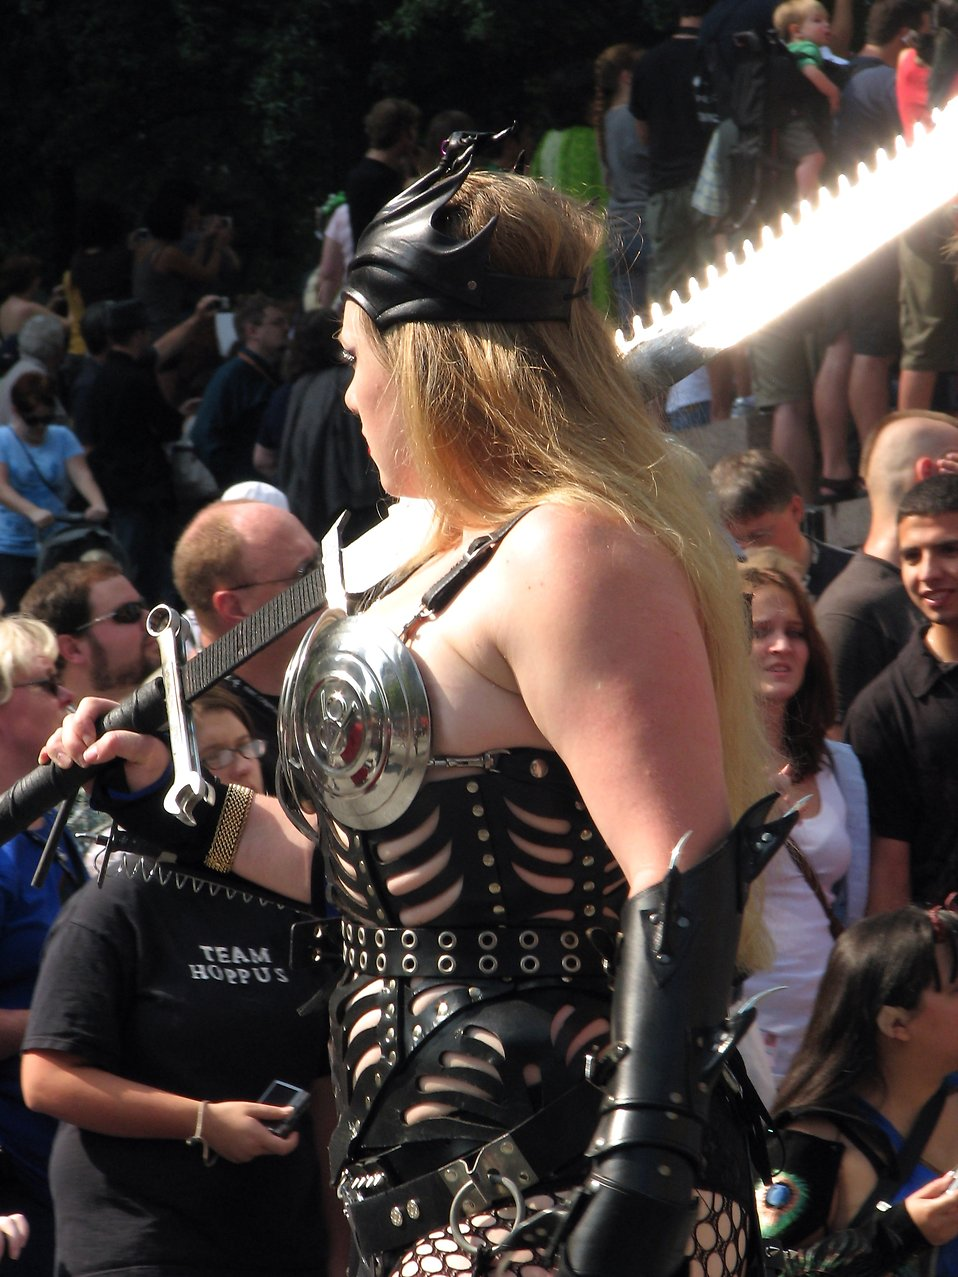 Tall blonde barbarian costume with sword in the 2008 Dragoncon parade : Free Stock Photo